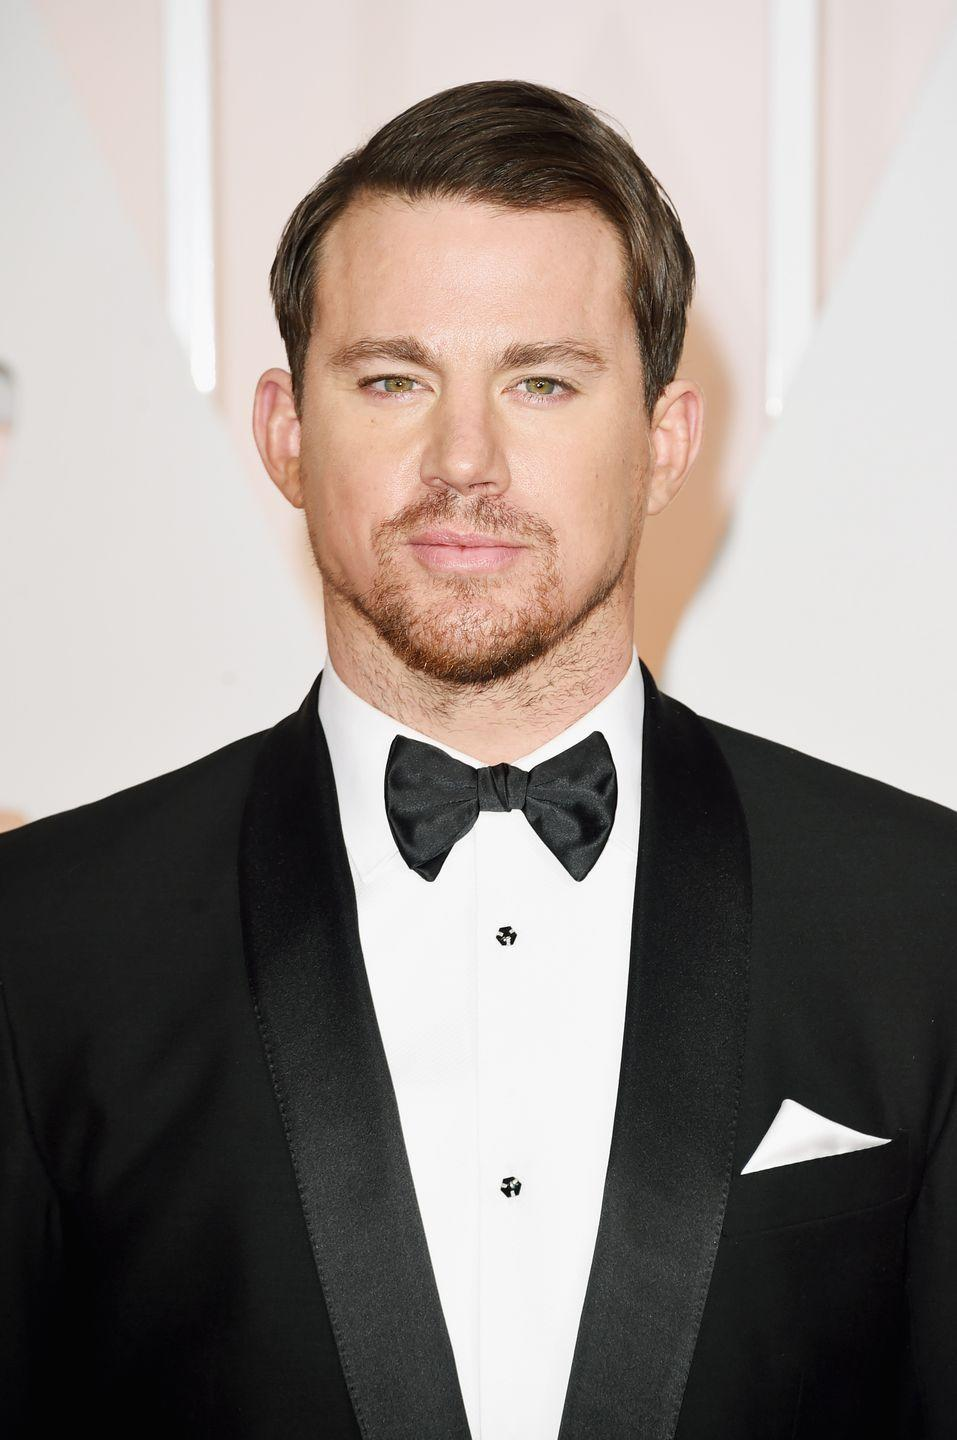 """<p>Channing was in both <em>The Rise of Cobra </em>and <em>Retaliation</em>, and has been <em>very</em> vocal about being """"<a href=""""http://variety.com/2015/film/news/channing-tatum-g-i-joe-rise-of-the-cobra-1201526536/"""" rel=""""nofollow noopener"""" target=""""_blank"""" data-ylk=""""slk:forced"""" class=""""link rapid-noclick-resp"""">forced</a>"""" to make the films and how much he hates them. Hmm. </p>"""